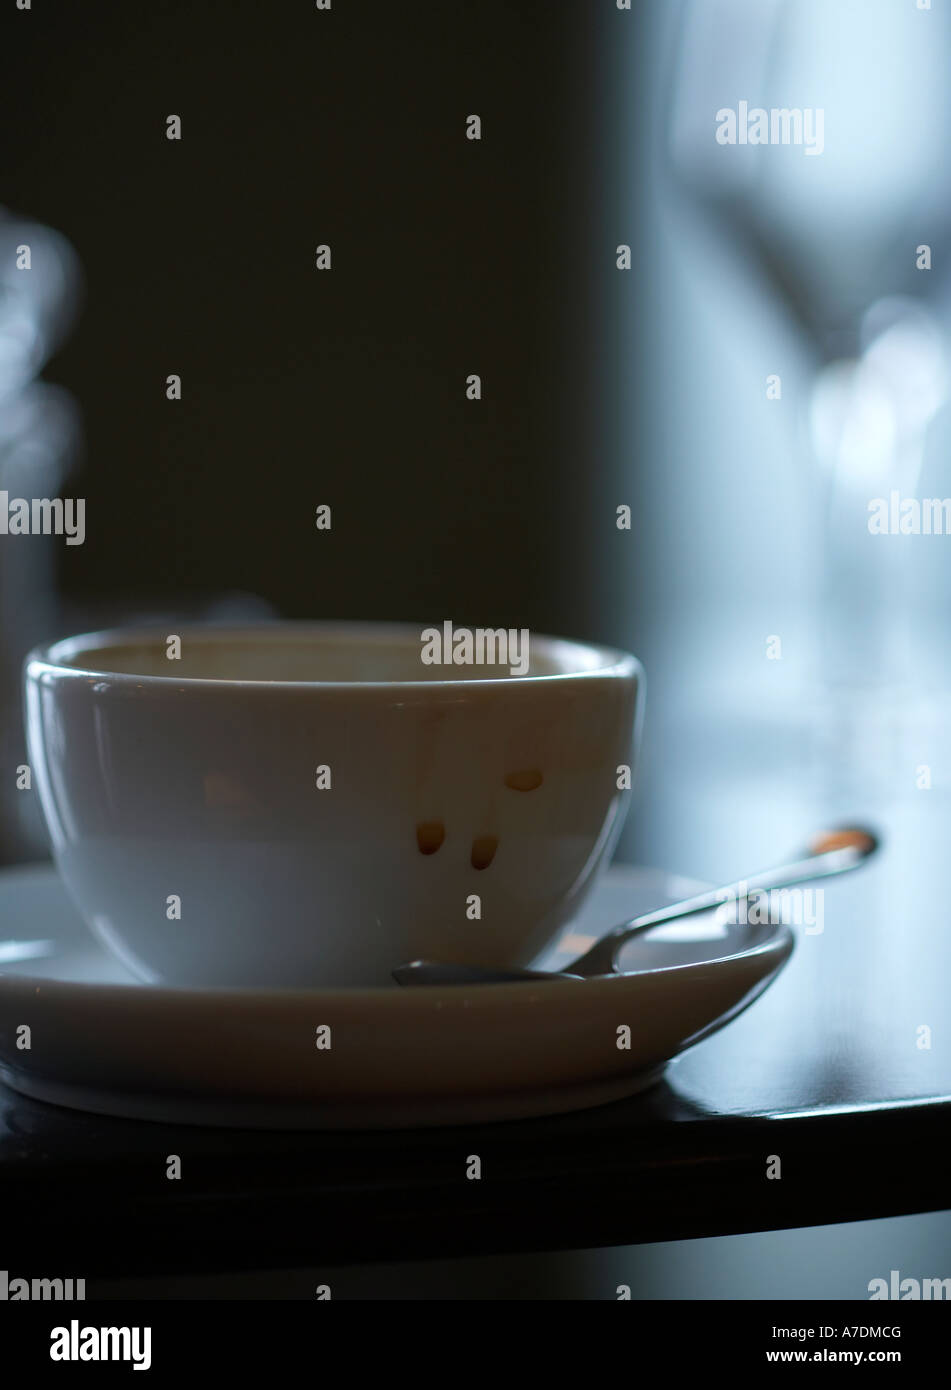 Coffee cup with stains on from being drunk - Stock Image